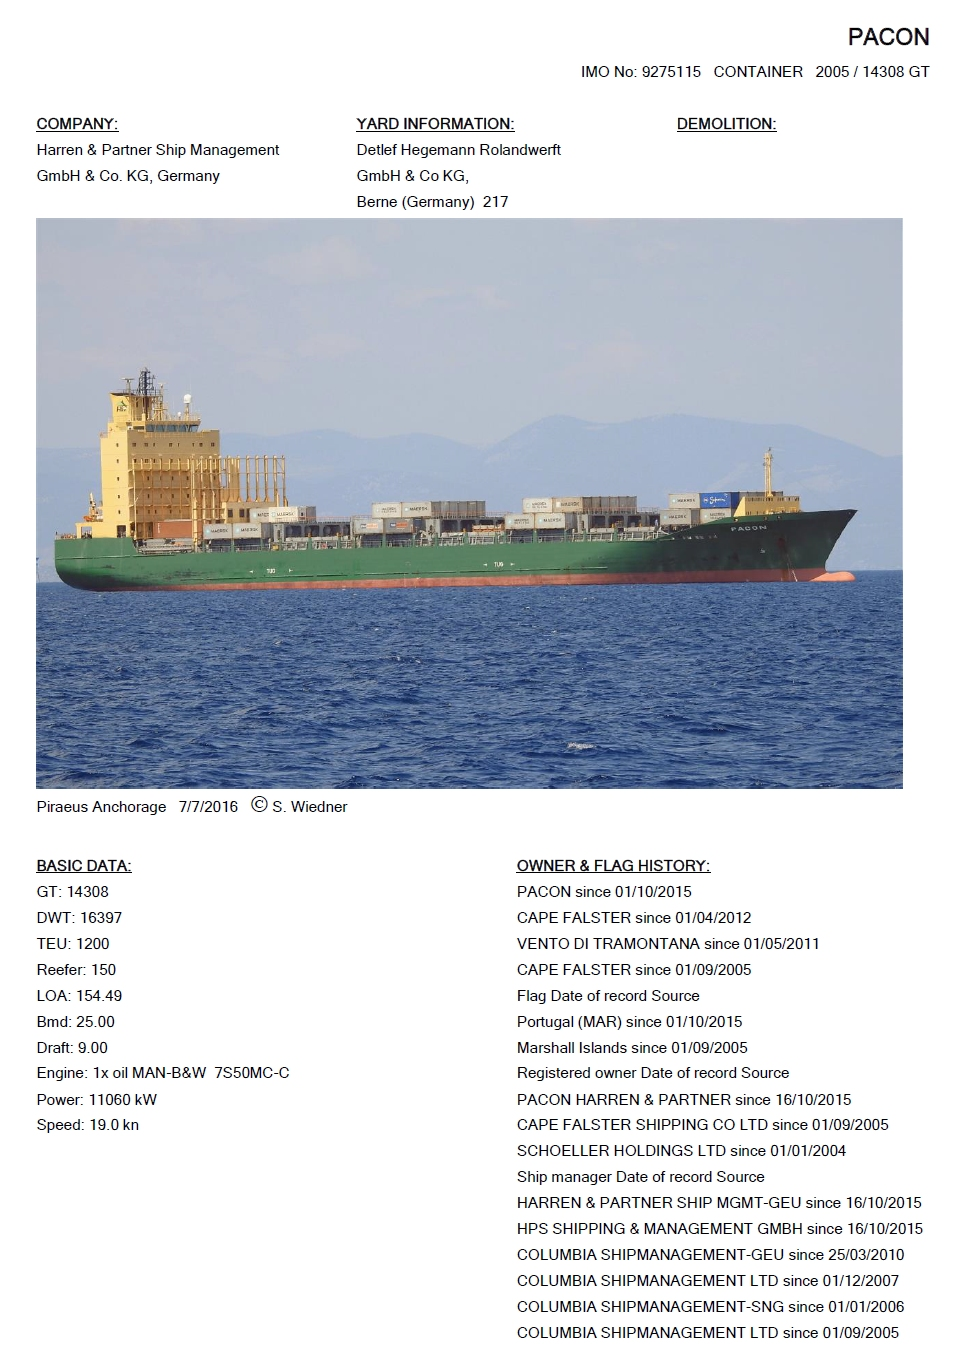 Cargo Vessels International Non Commercial Shipping Research Pacon Imo 9275115 2005 14308 Gt 1200 Teu 150 Reefer Yard Hegemann Rolandwerft 217 Engine Man B W 7s50mc C 11060 Kw Pacon 2015 Cape Falster 2012 15 Vento Di